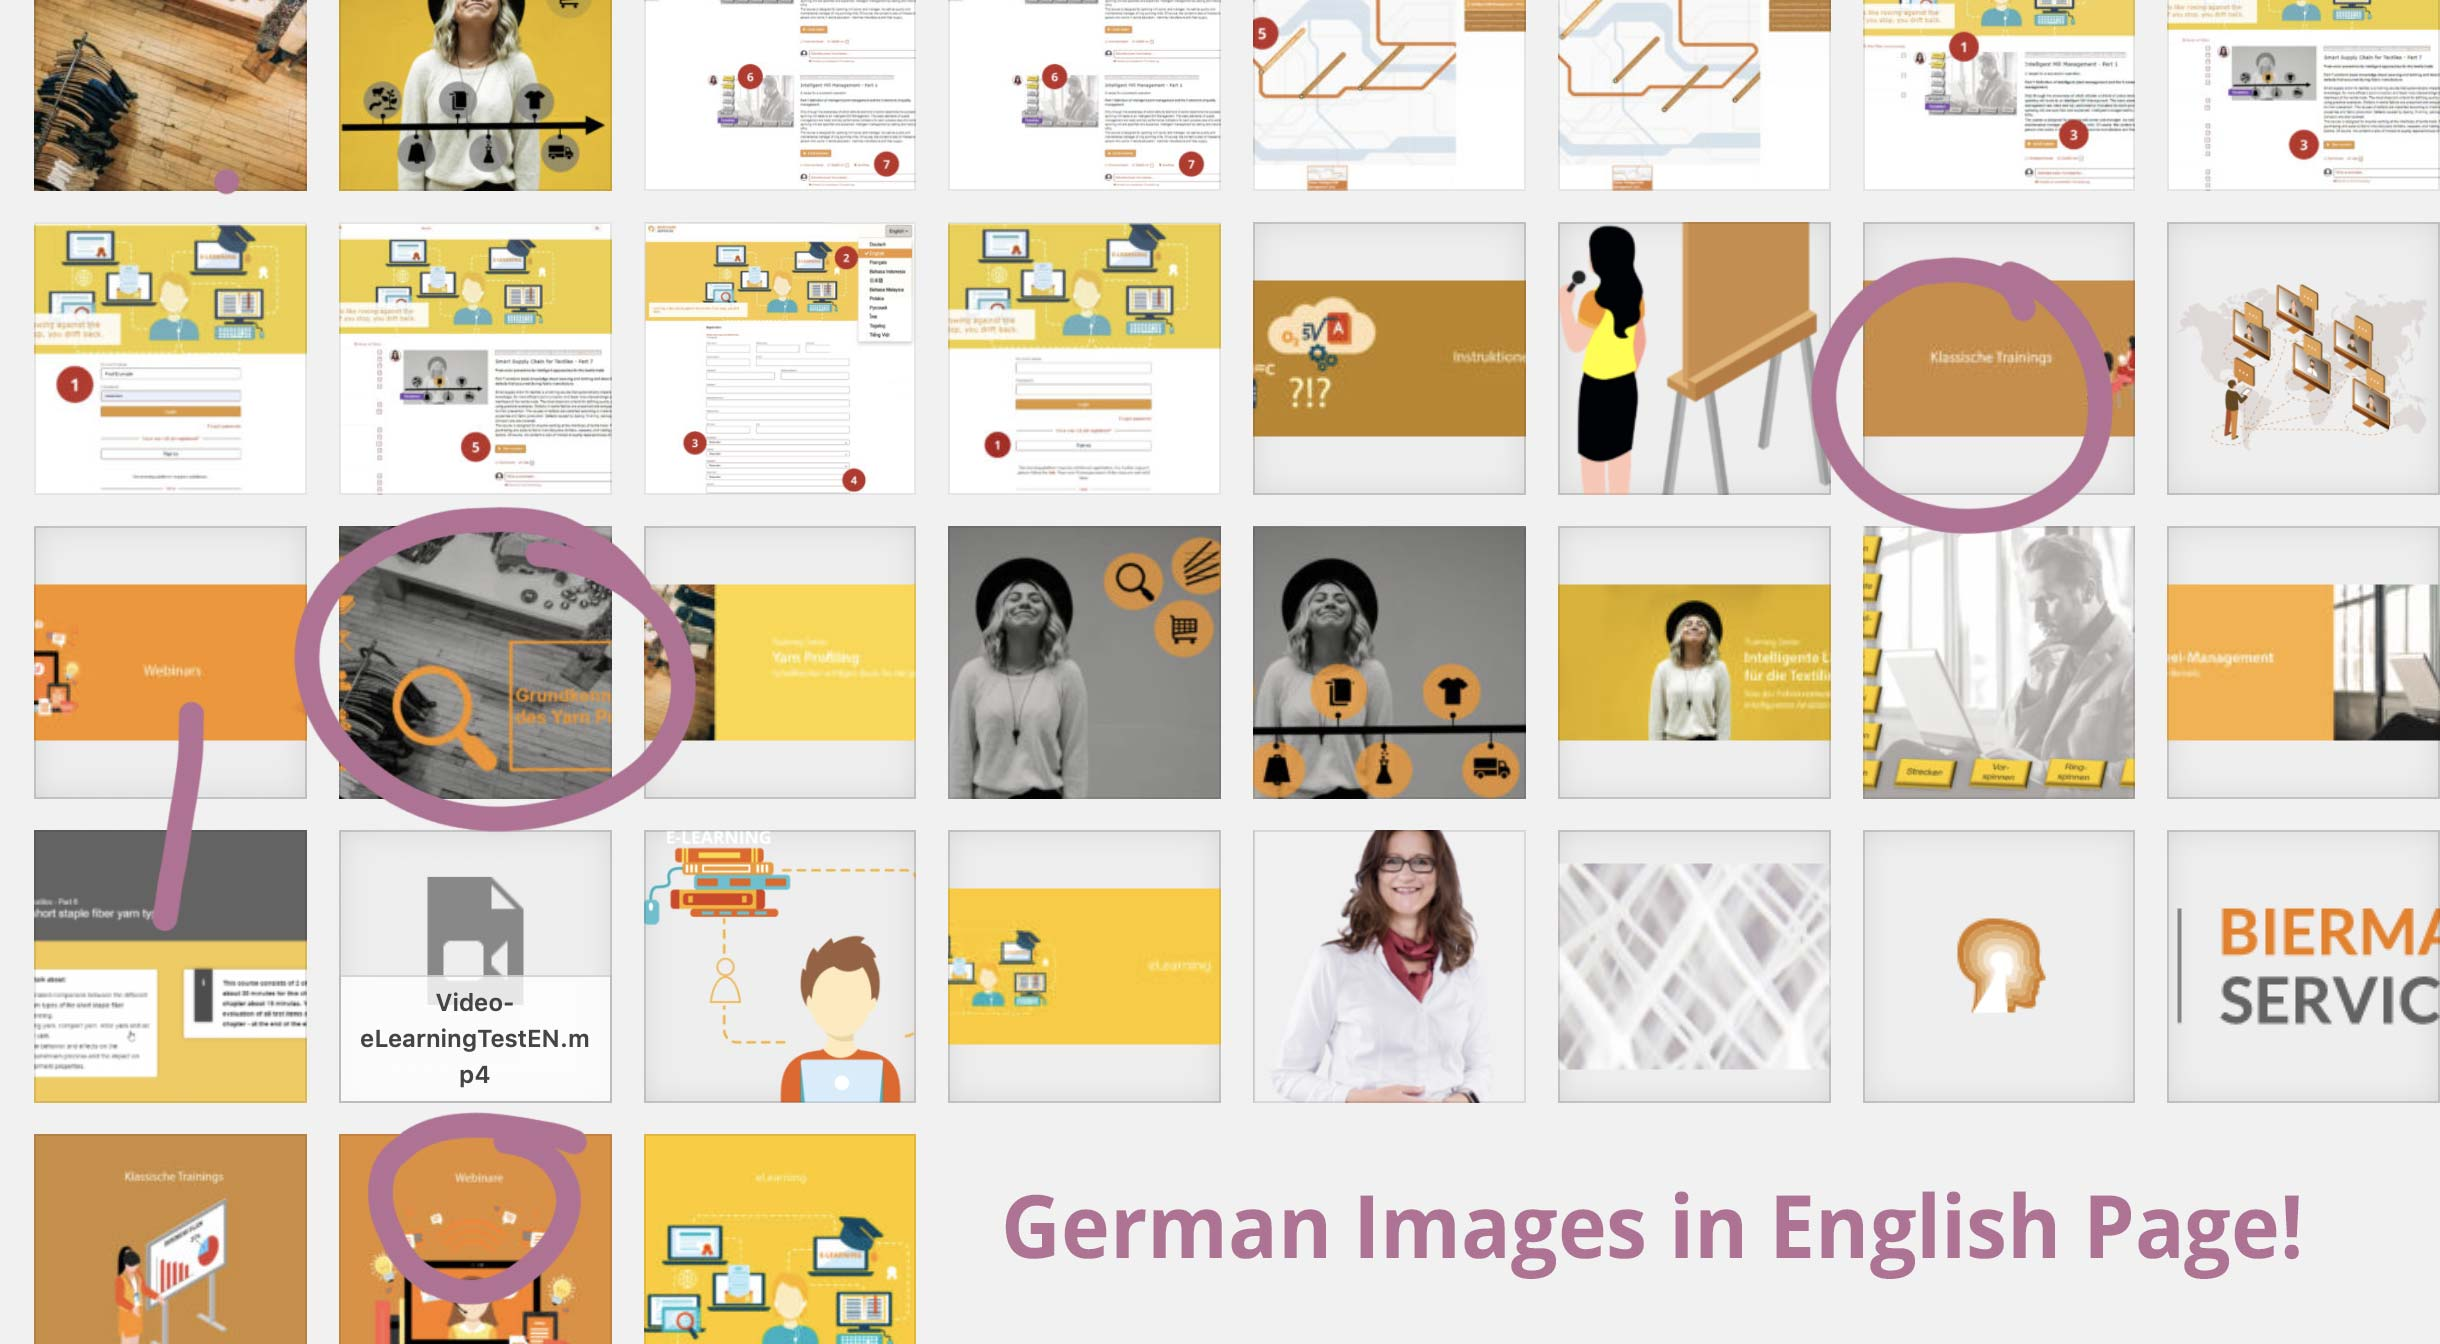 germanimagesinenglishpage.jpg